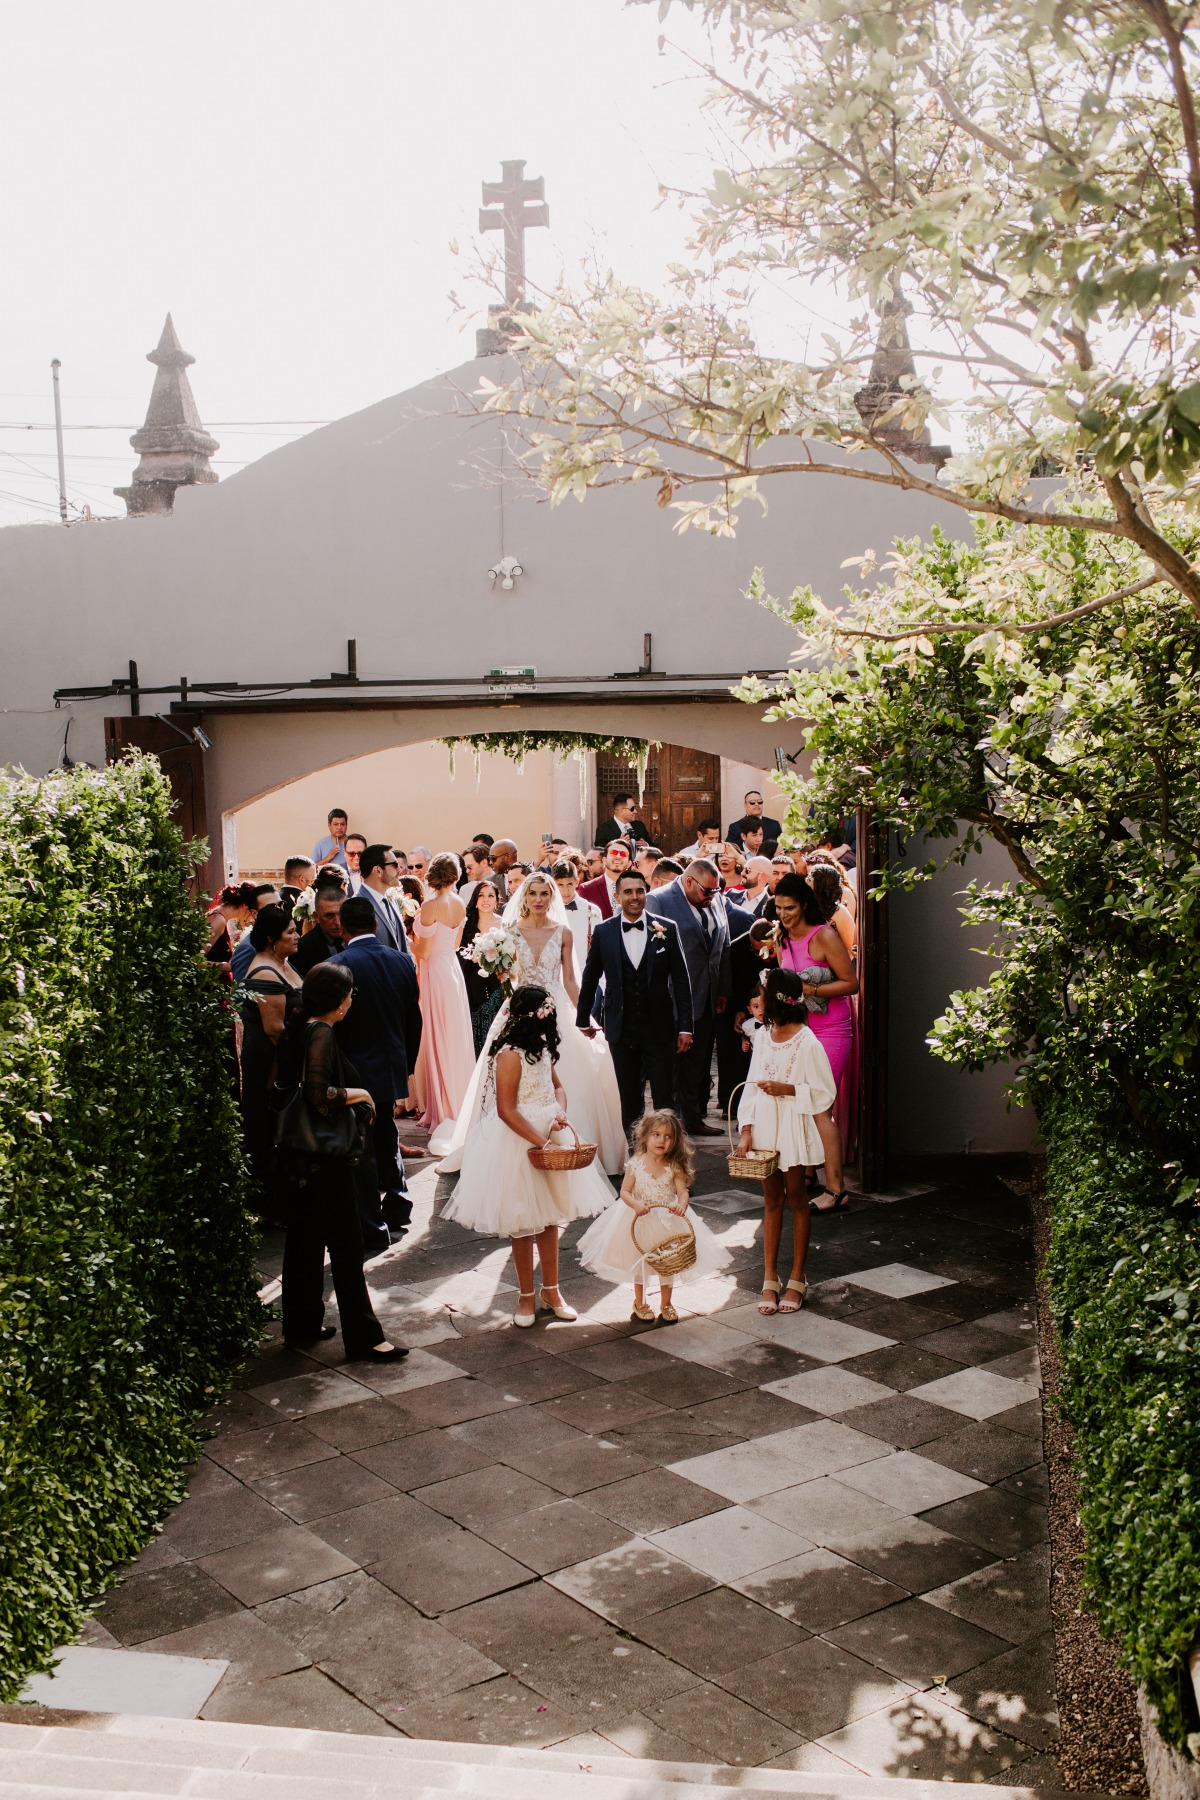 San Miguel de Allende wedding venue